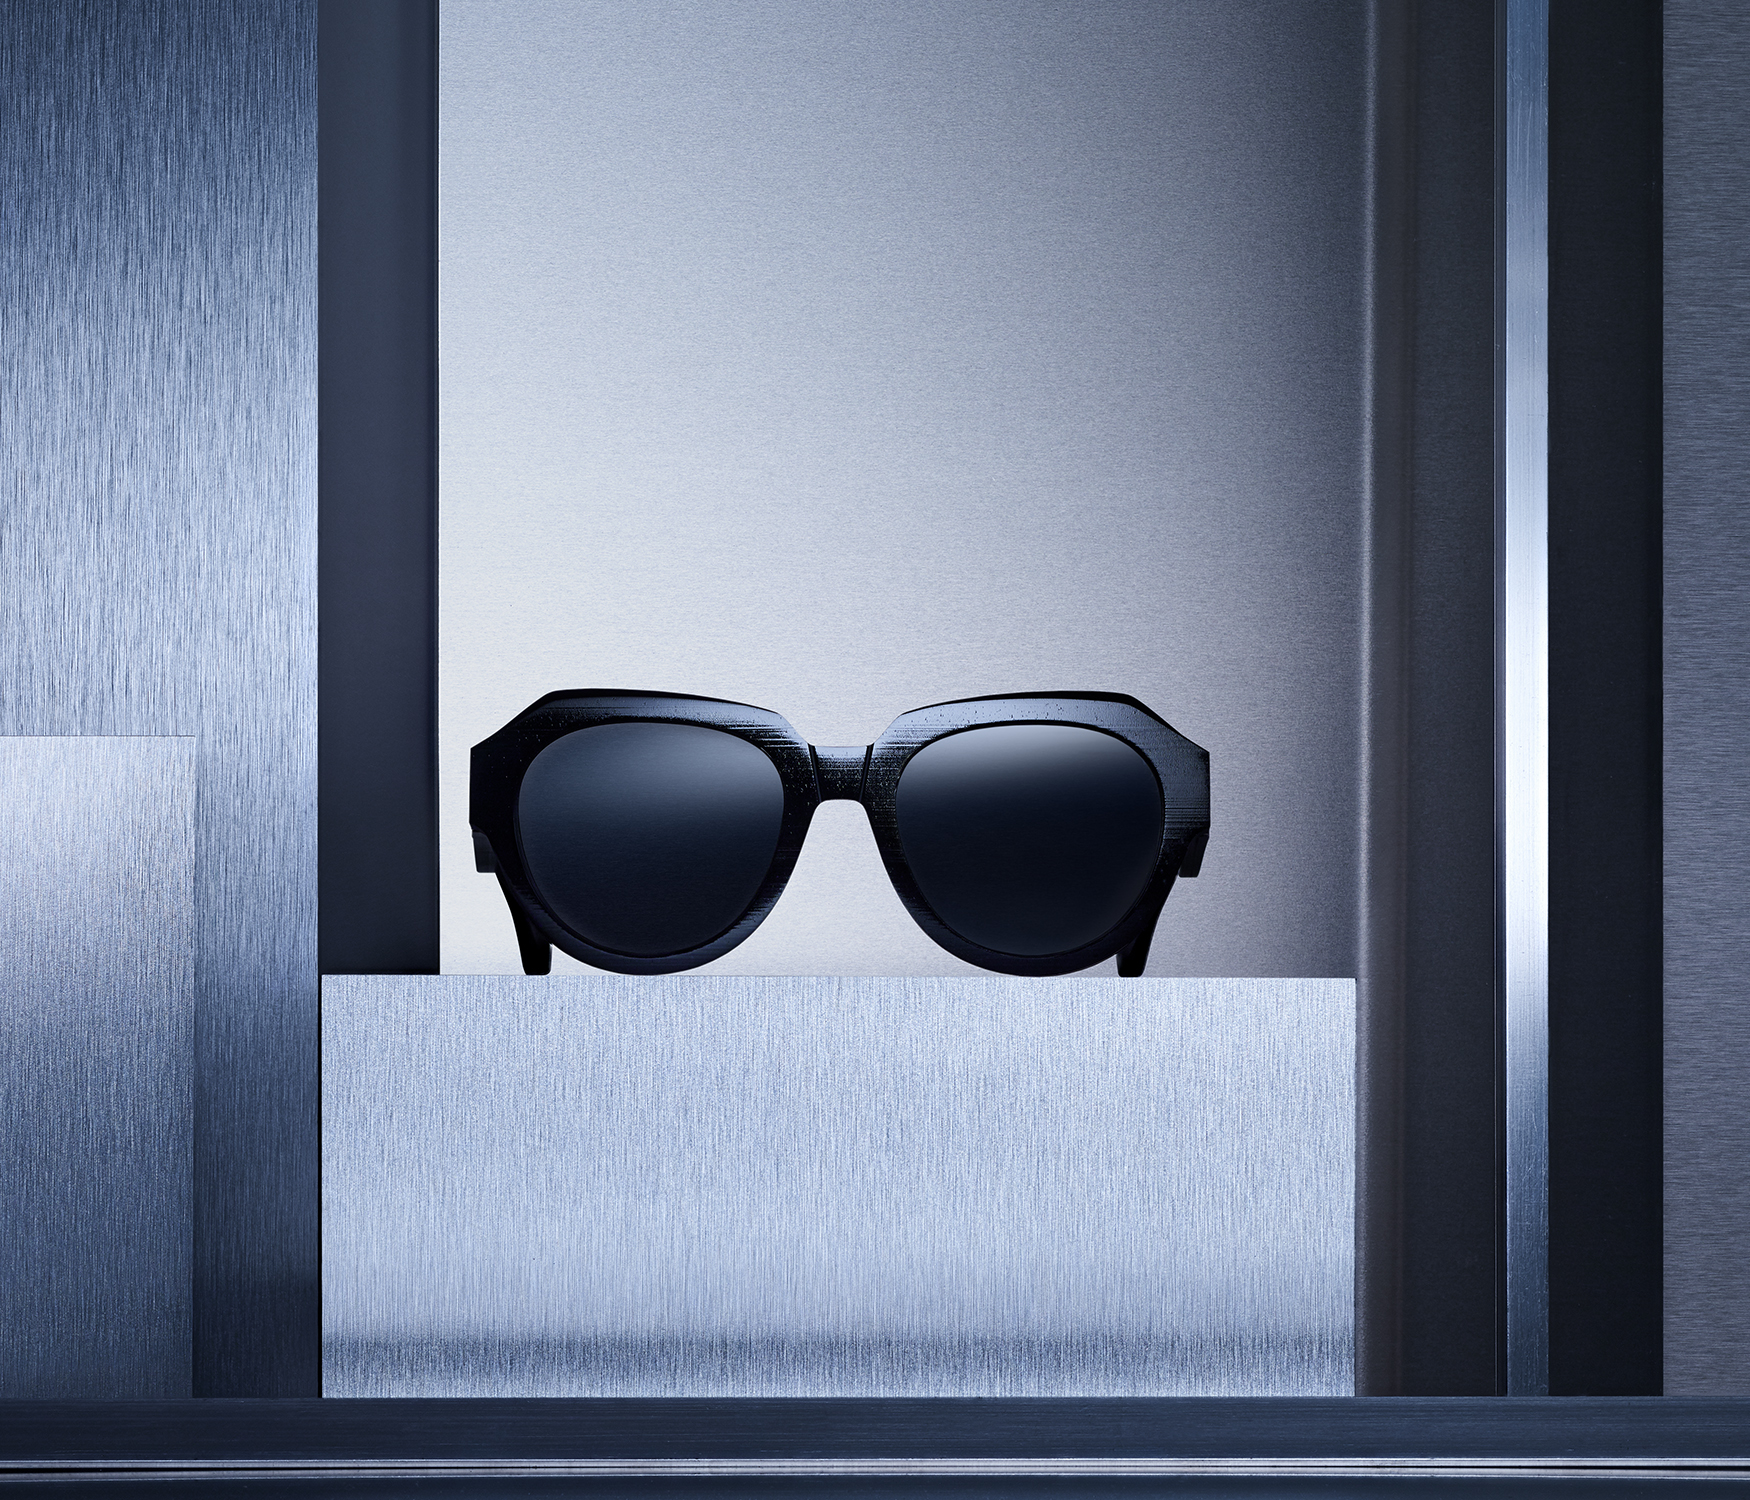 MYKITA Maison Margiela Campaign Mmraw014 Raw Black Dark Grey Solid Srgb